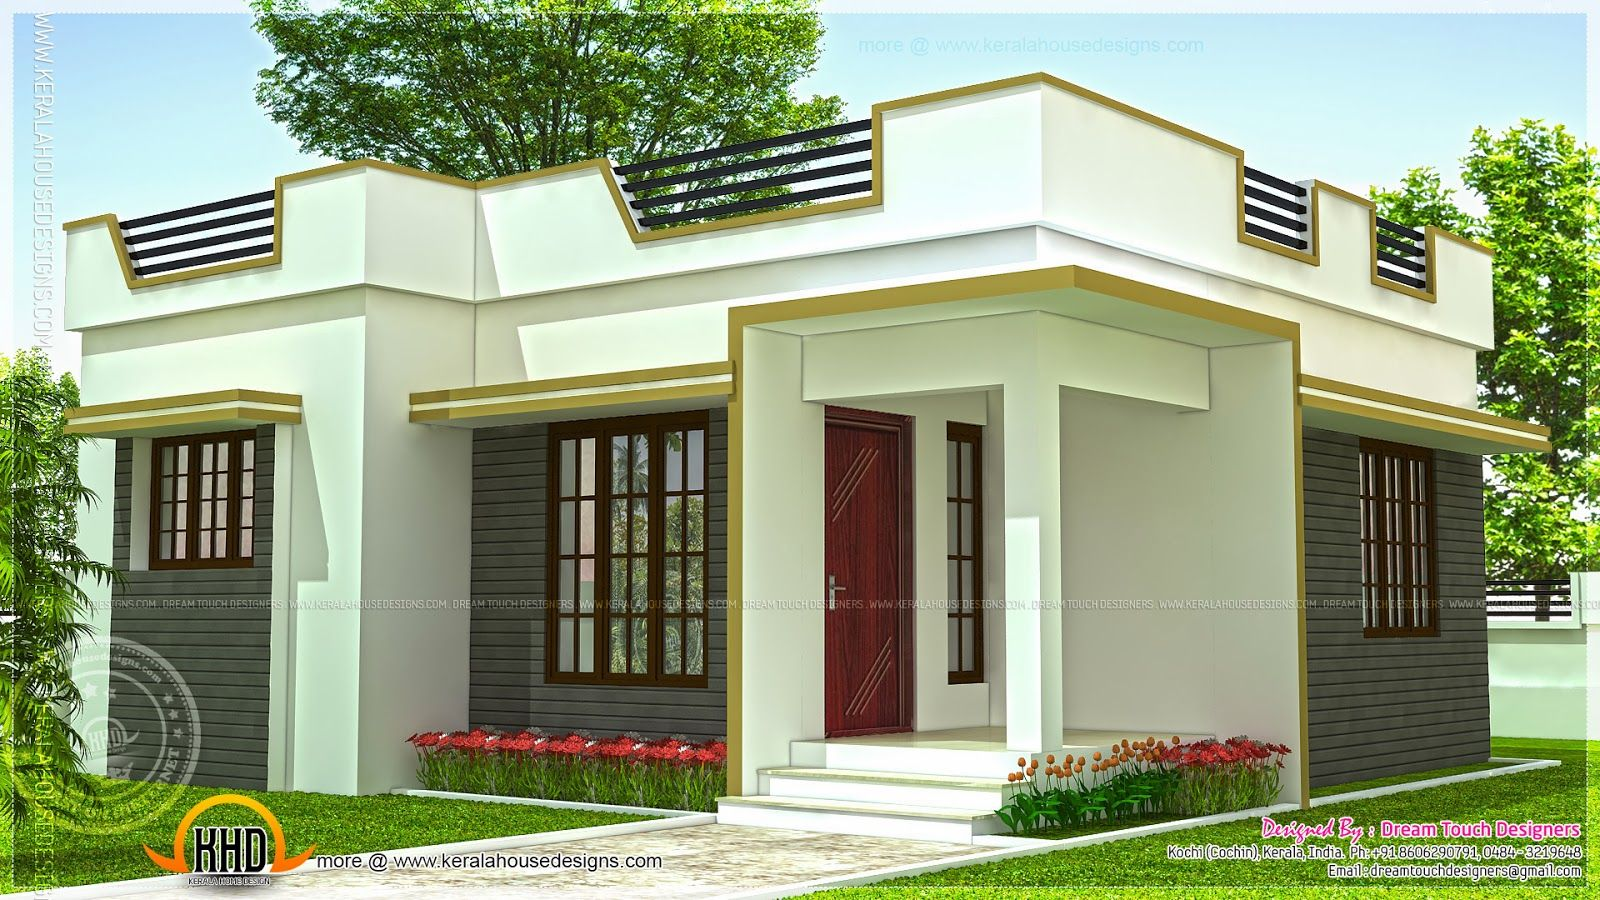 Lately 21 small house design kerala small house 1600 900 best house pinterest - Small house plans ...